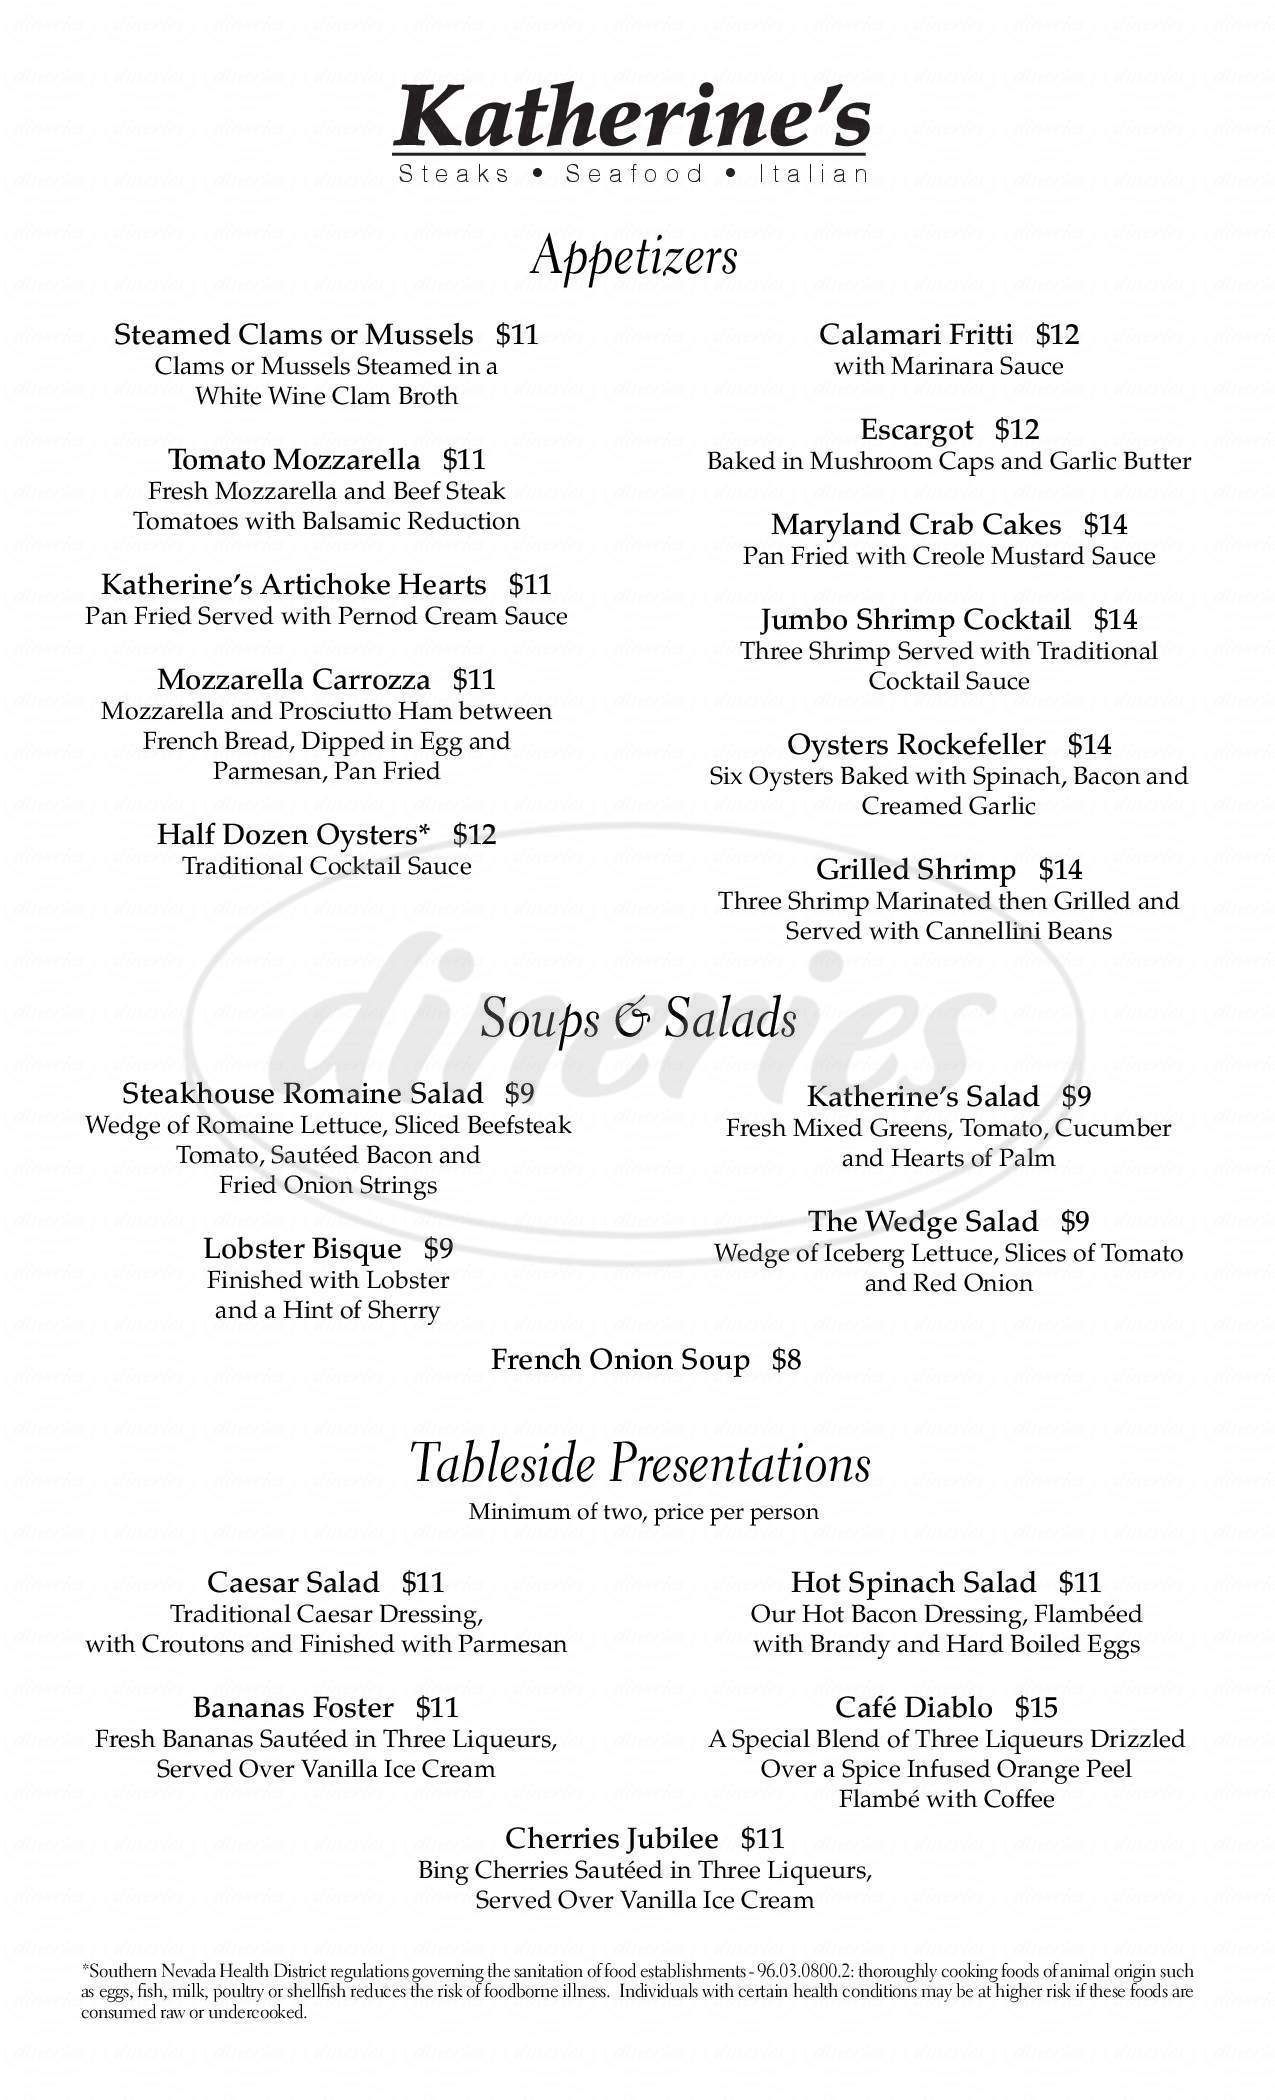 menu for Katherine's Steakhouse